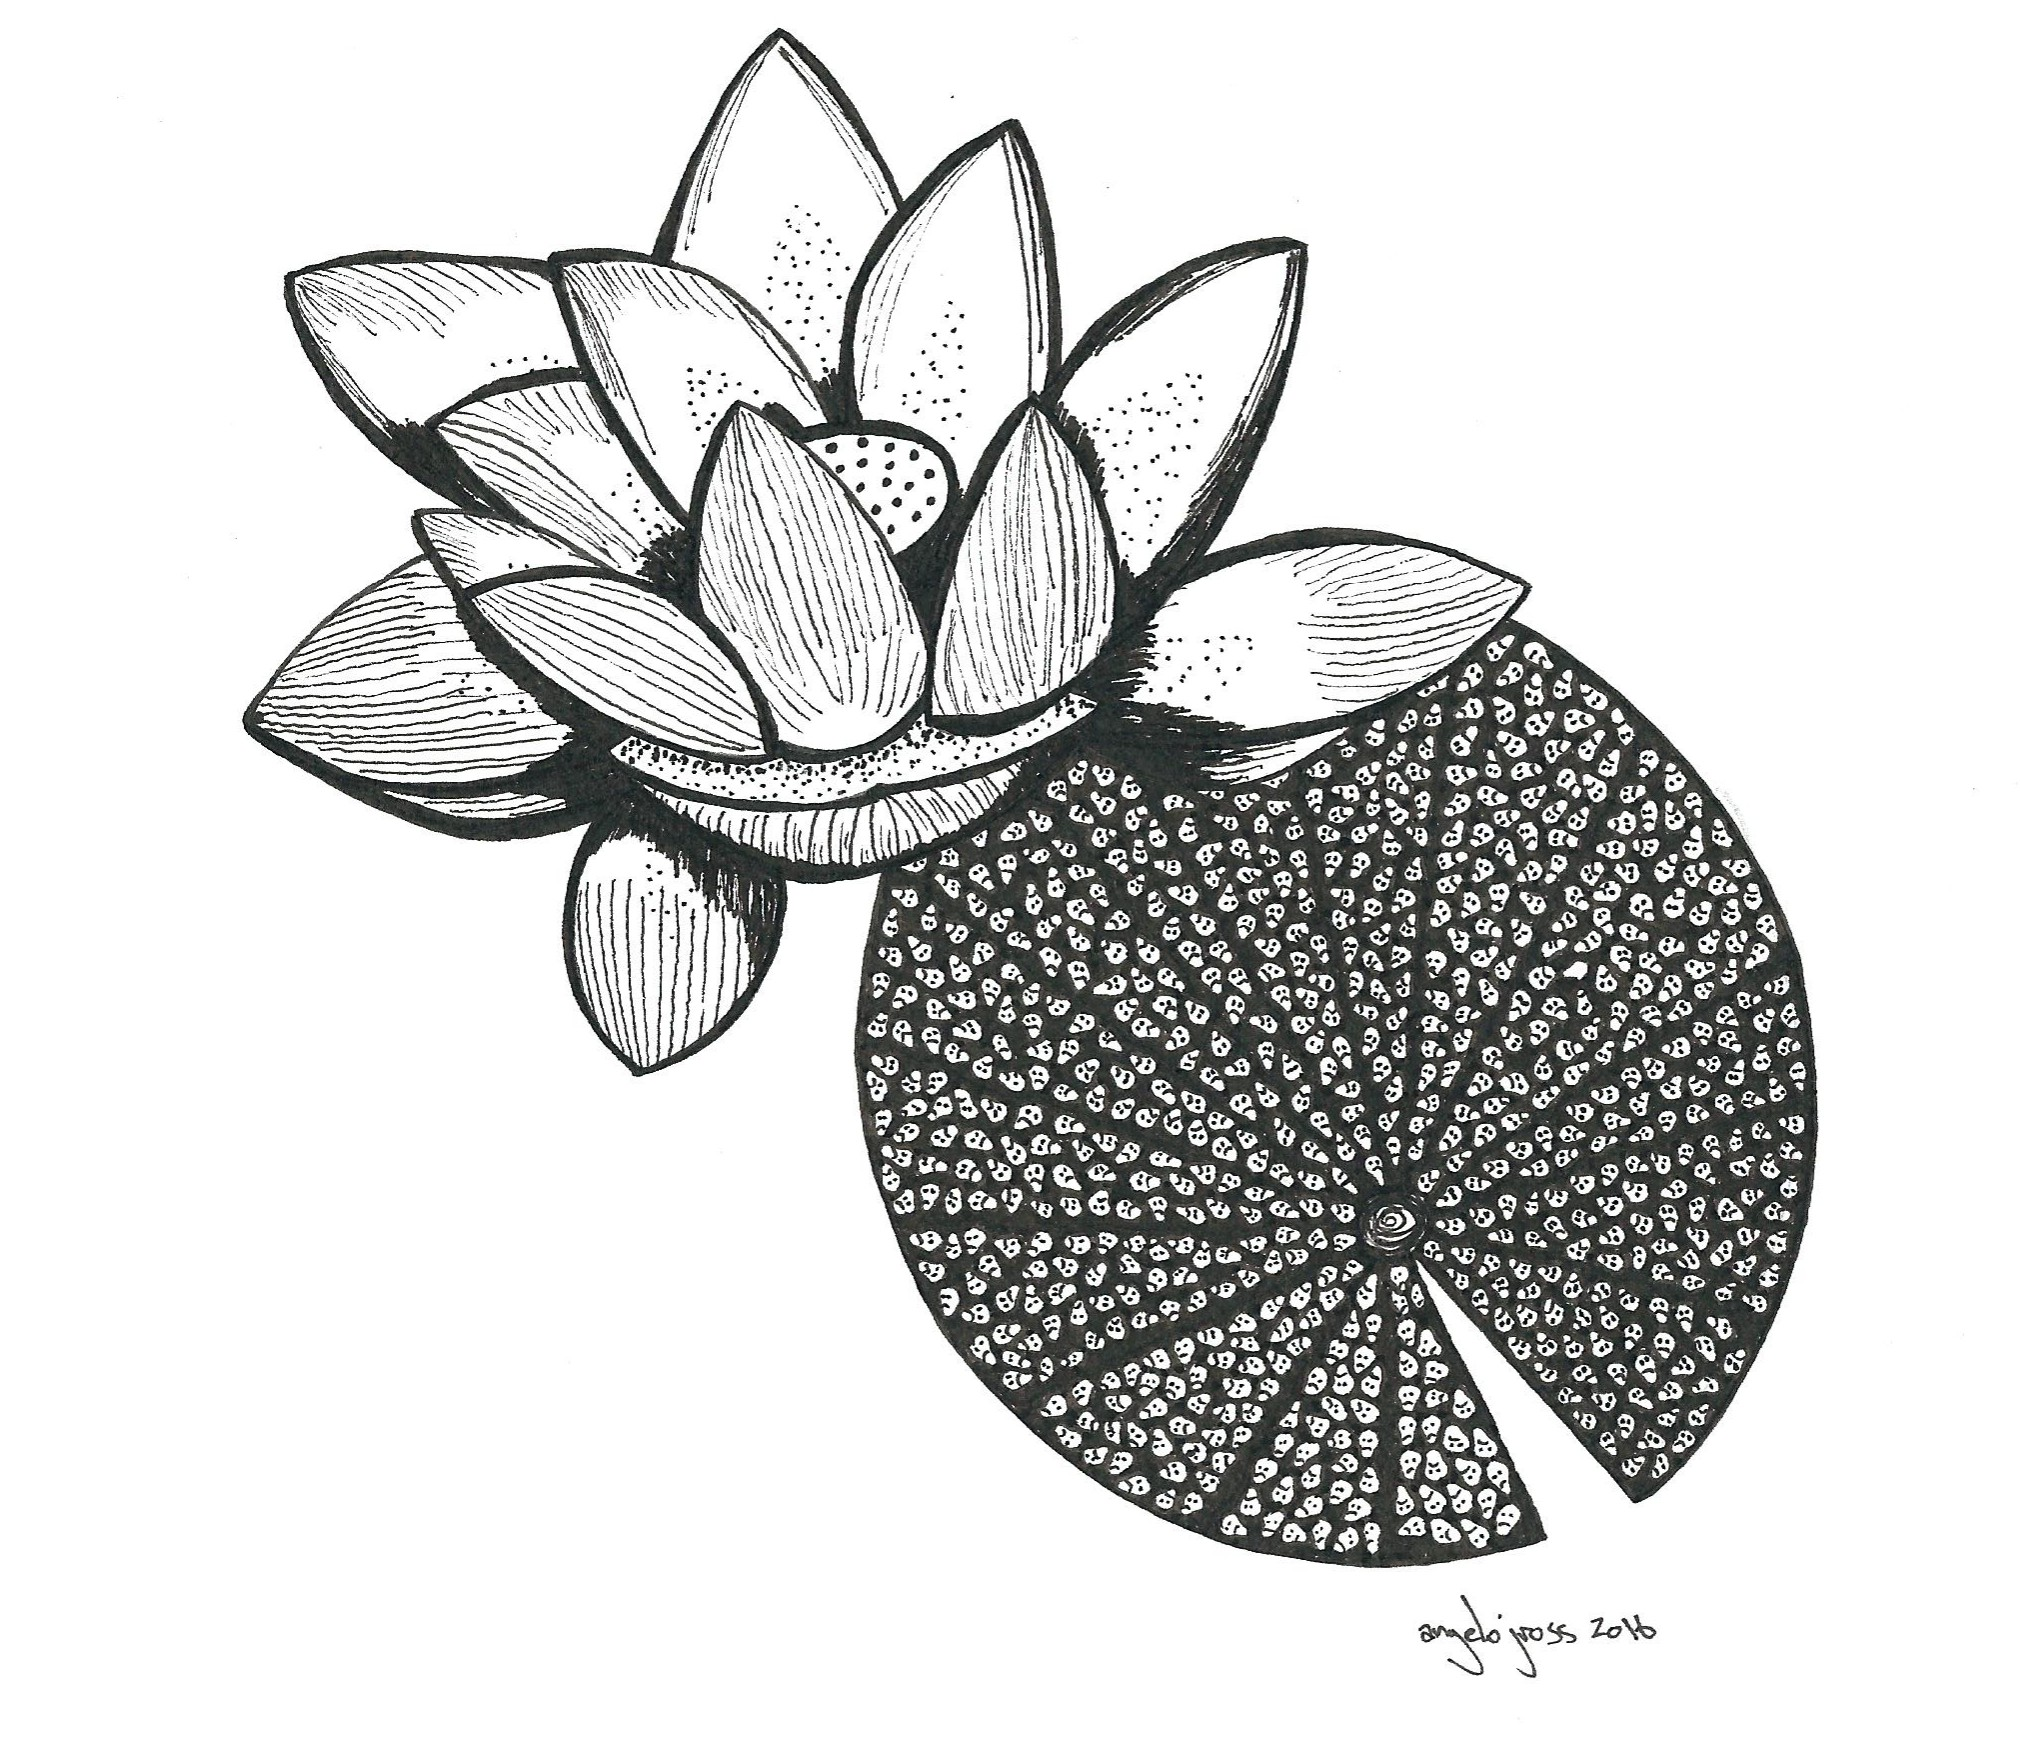 Creepy Lotus.  Pen and ink